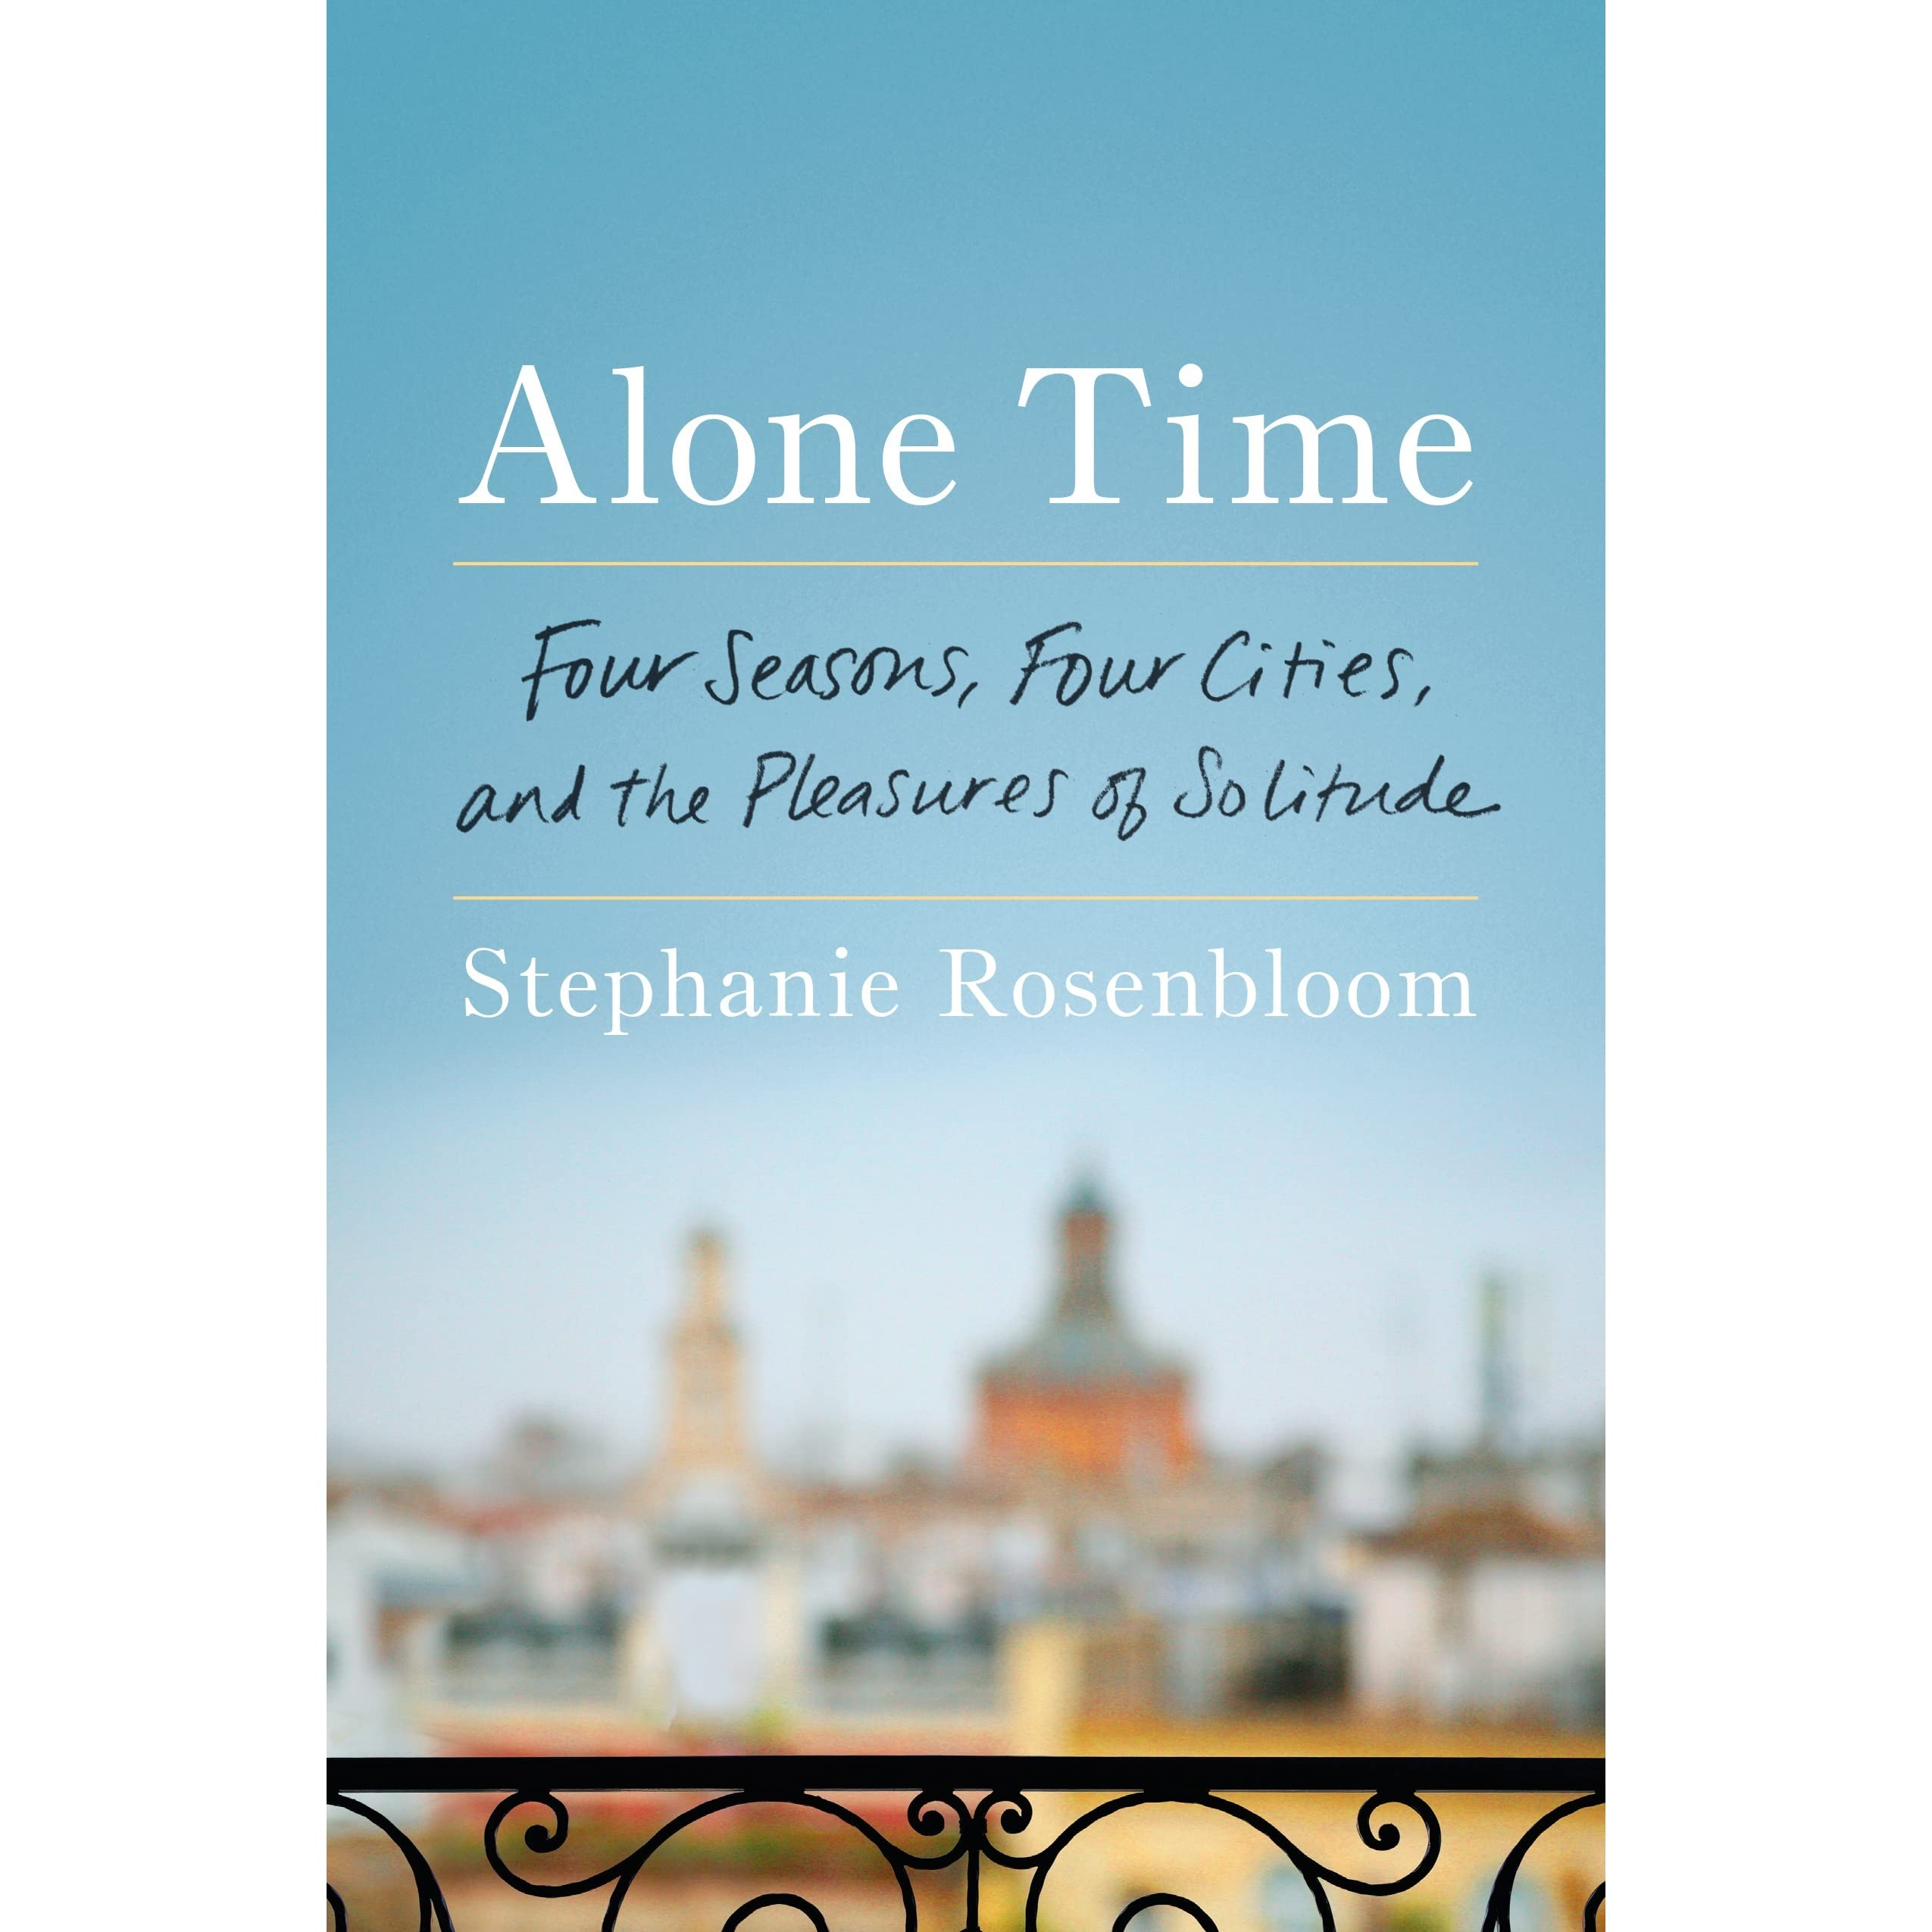 Como Descargar Libros En Goodreads Alone Time Four Seasons Four Cities And The Pleasures Of